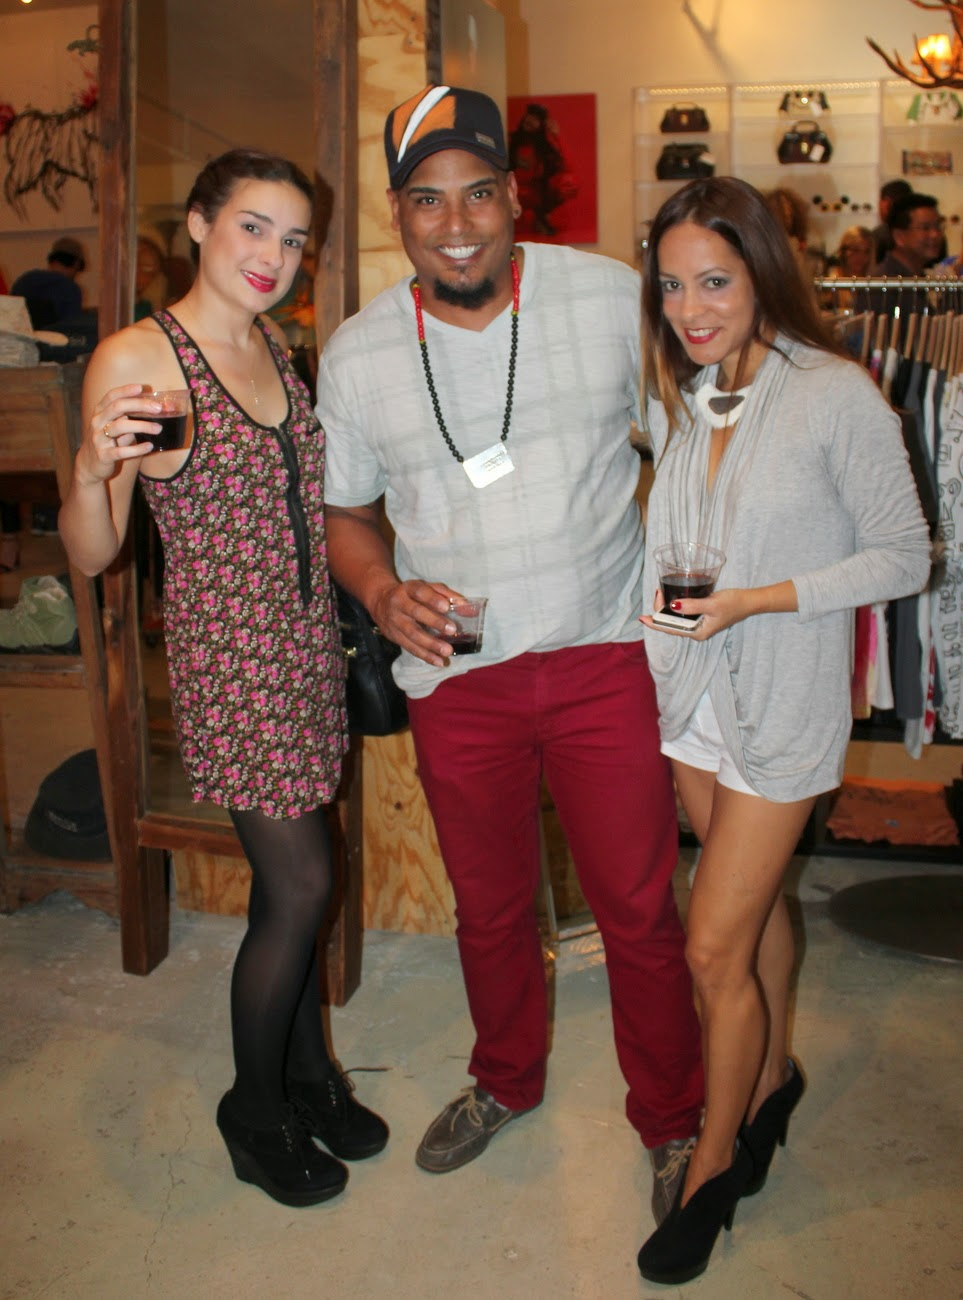 Alessandra Gold Concept Store Welcomes Lisu Vega's Collection with a Fashionable Fête